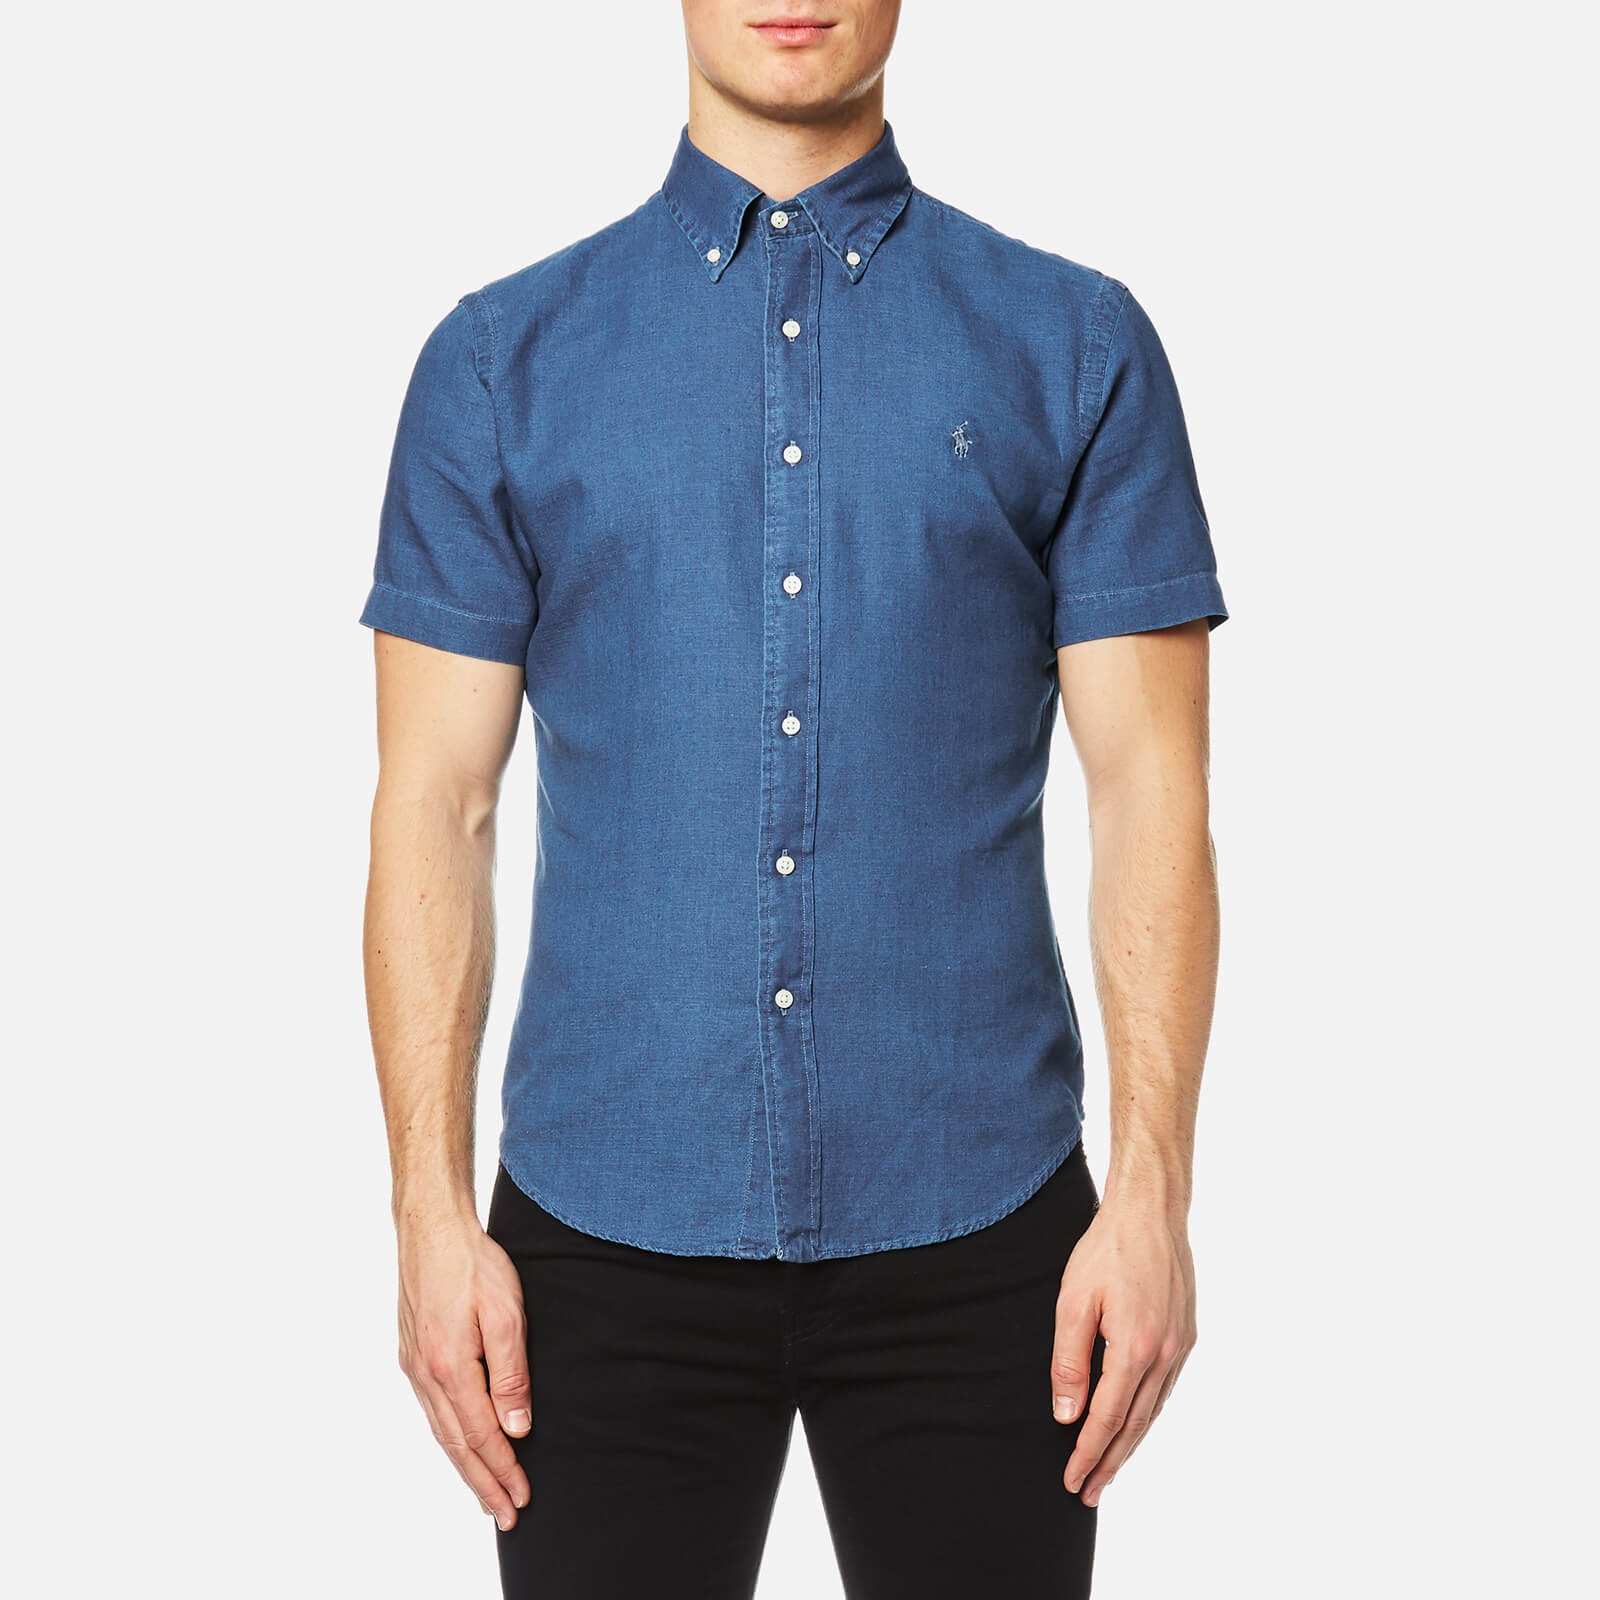 d40d14ecb44f Polo Ralph Lauren Men s Short Sleeve Slim Fit Oxford Shirt - Denim Washed  Blue - Free UK Delivery over £50